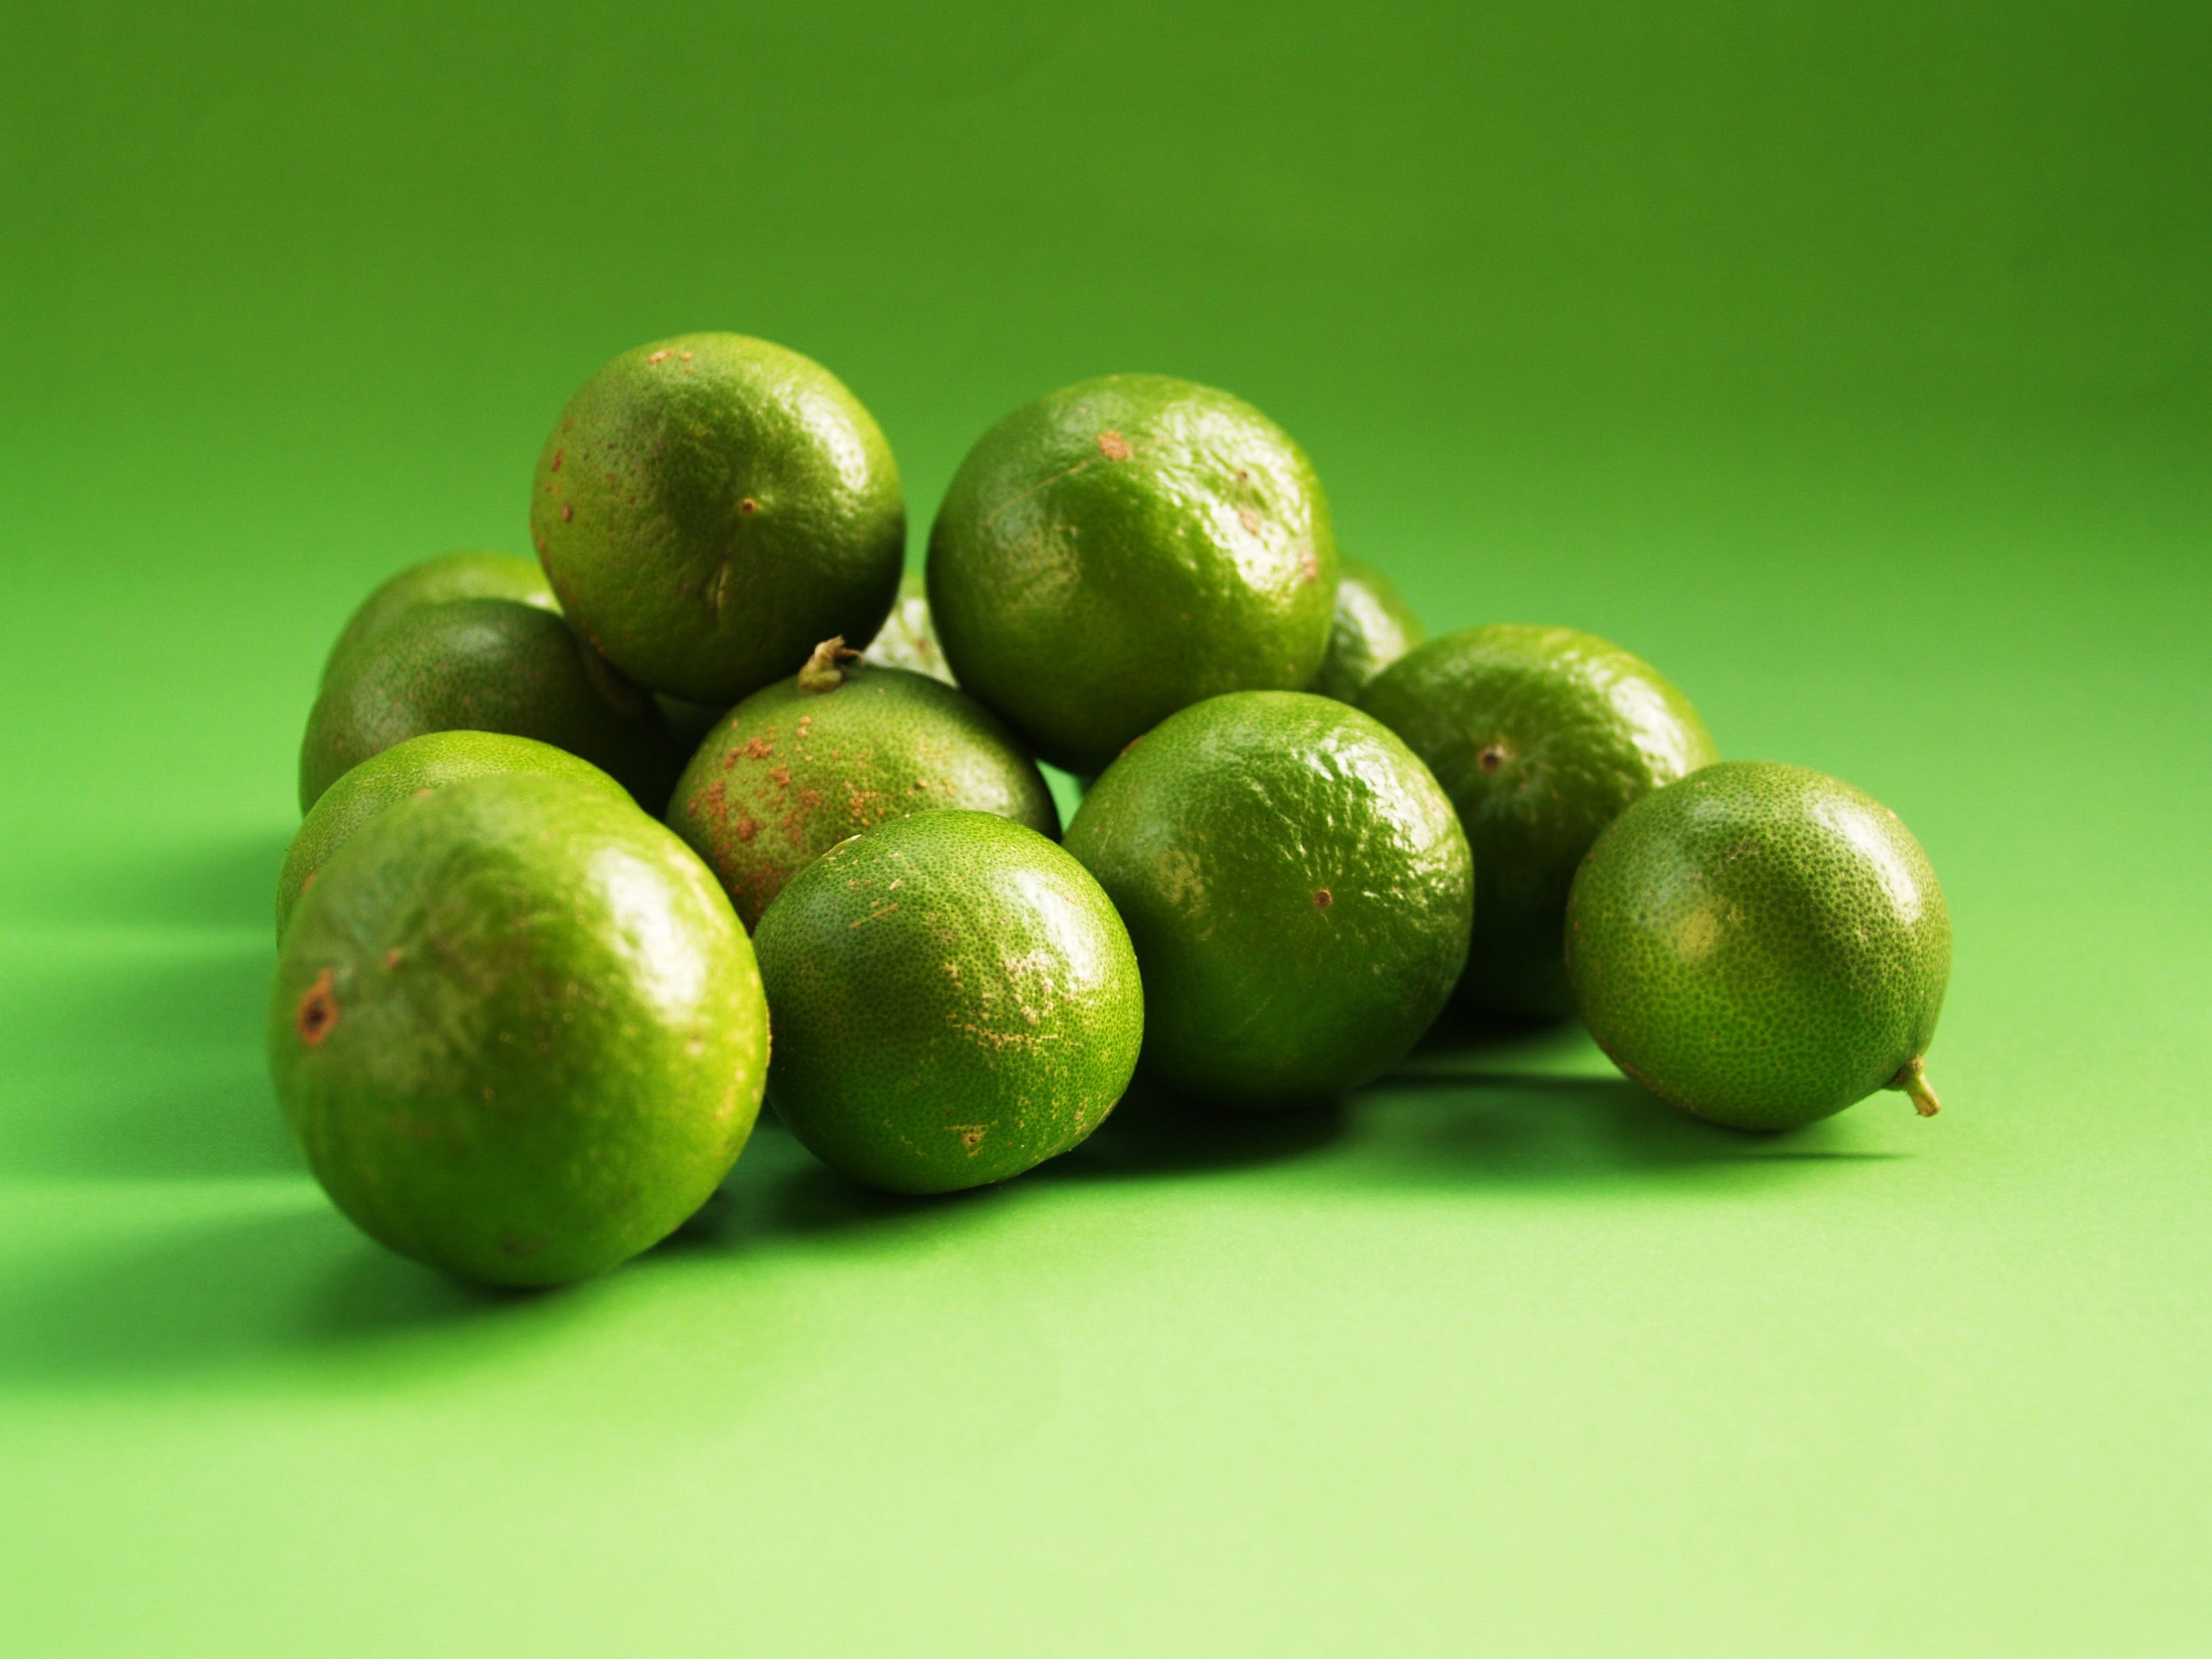 Pile of Green Lime Fruits